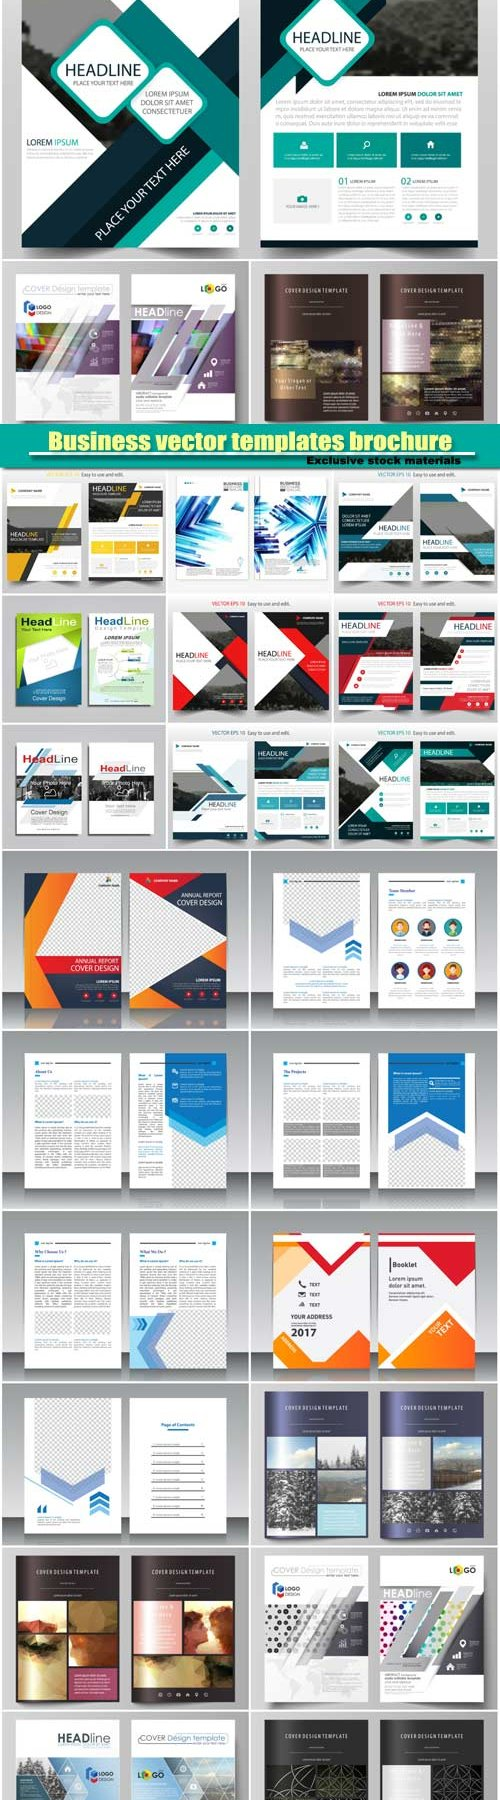 Business vector templates brochure, magazine, flyer, booklet or annual report